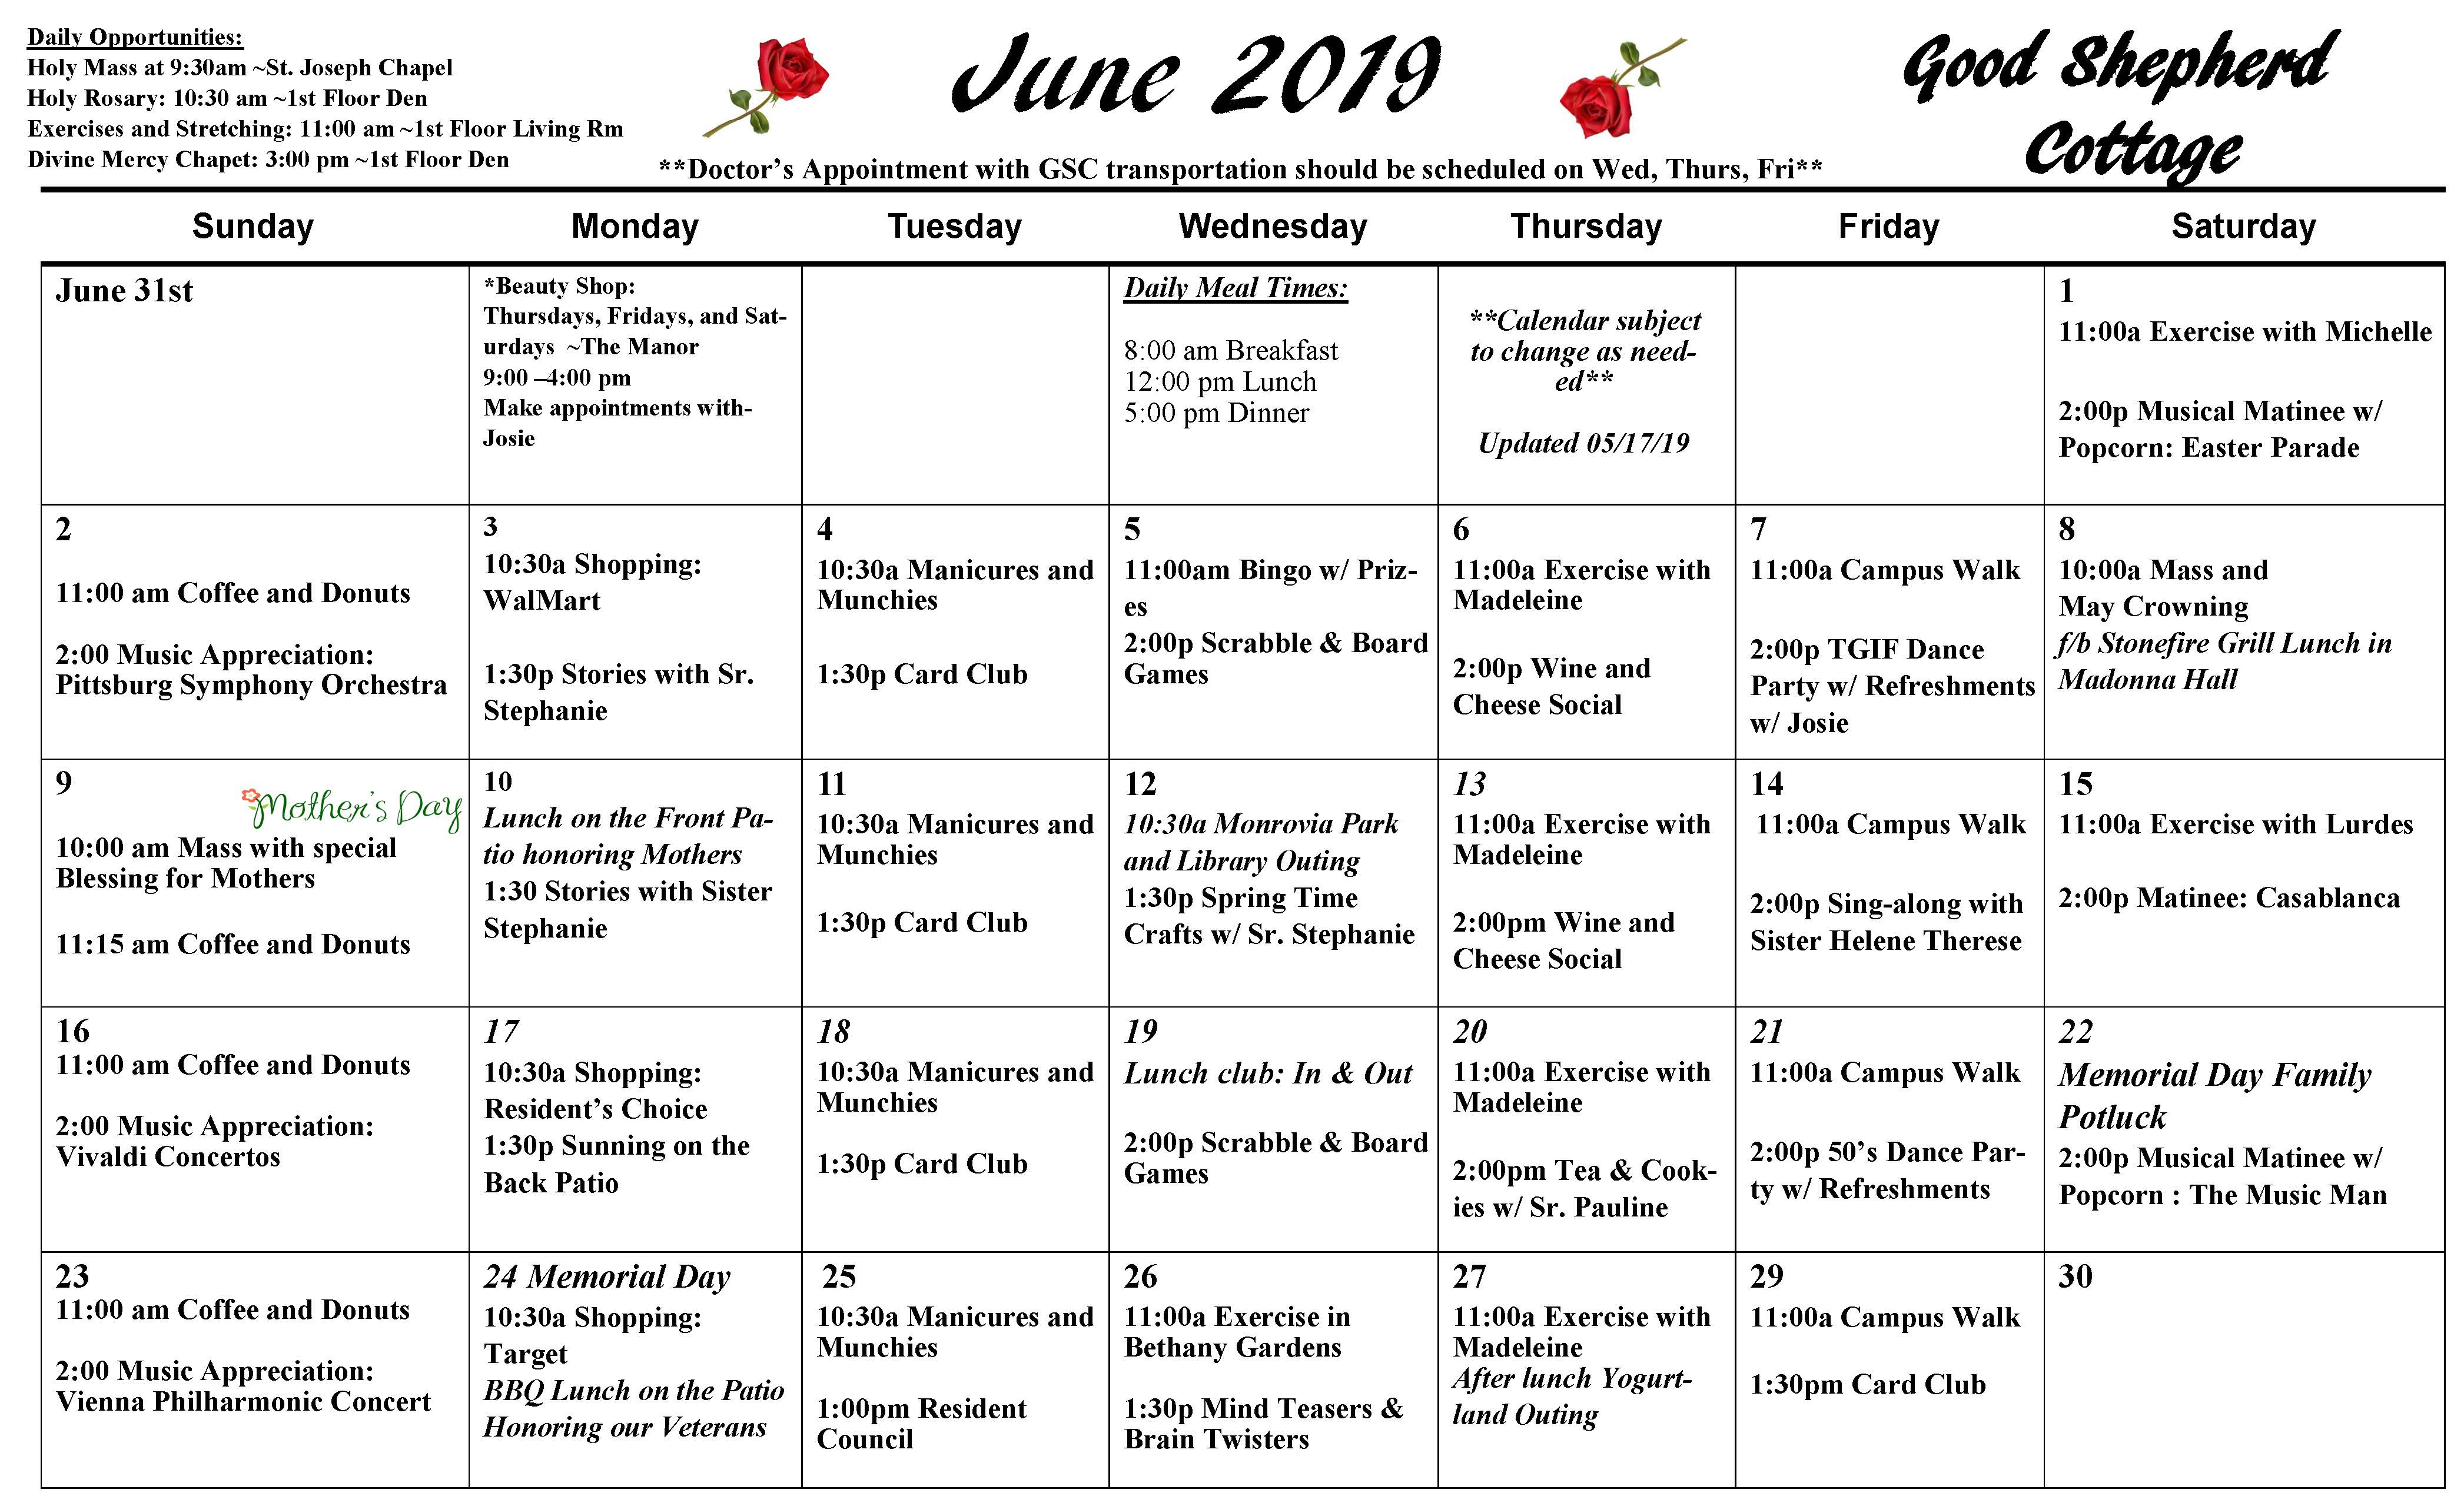 Good Shepherd Cottage Calendar